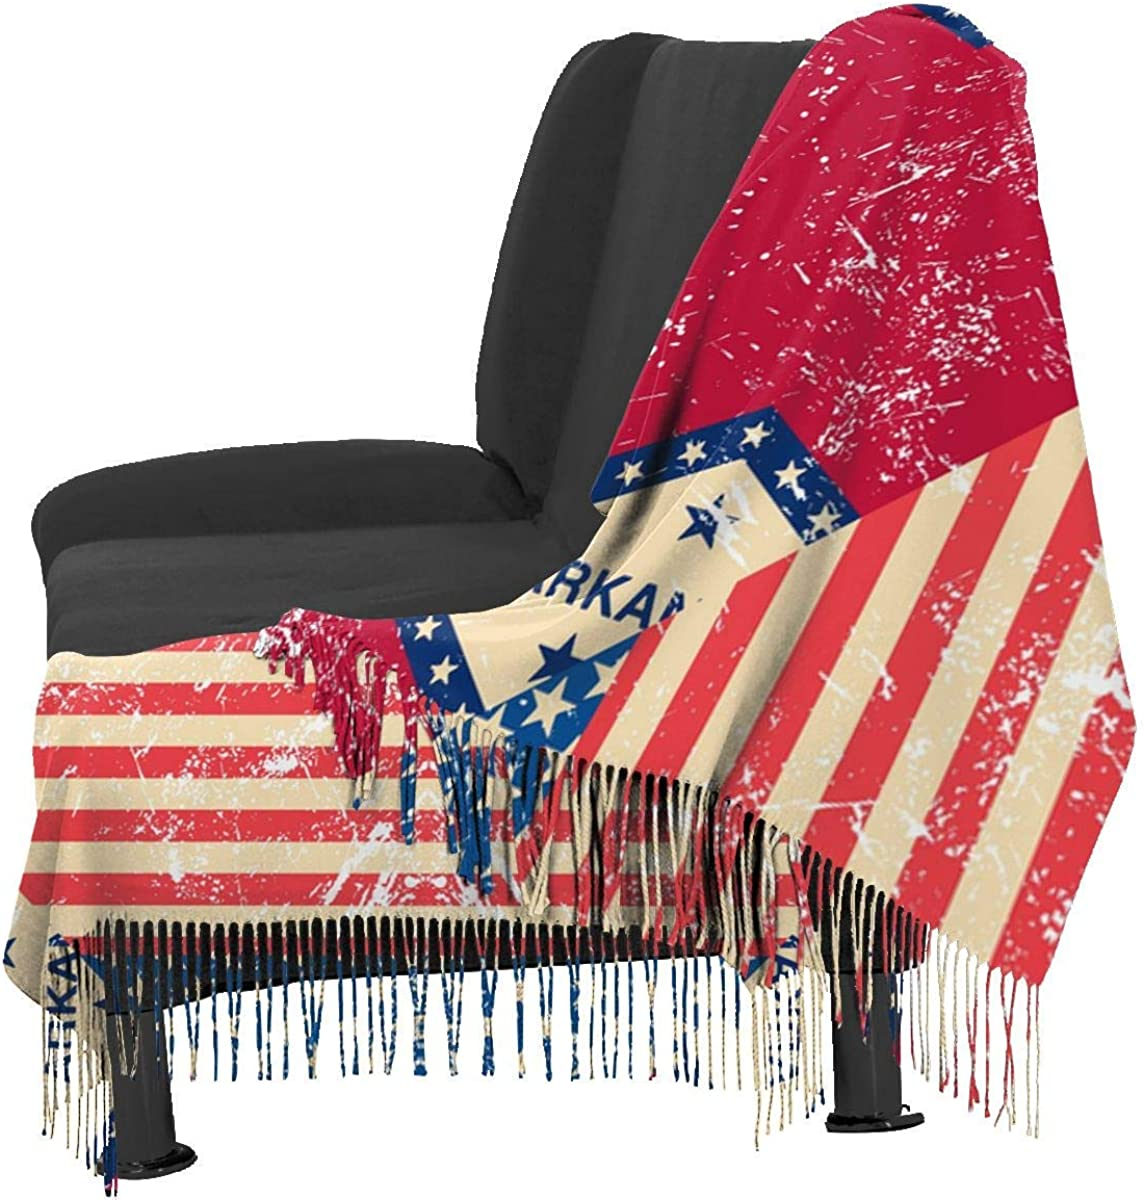 Retro USA and Arkansas State Flag Cashmere Scarf Shawl Wraps Super Soft Warm Tassel Scarves For Women Office Worker Travel